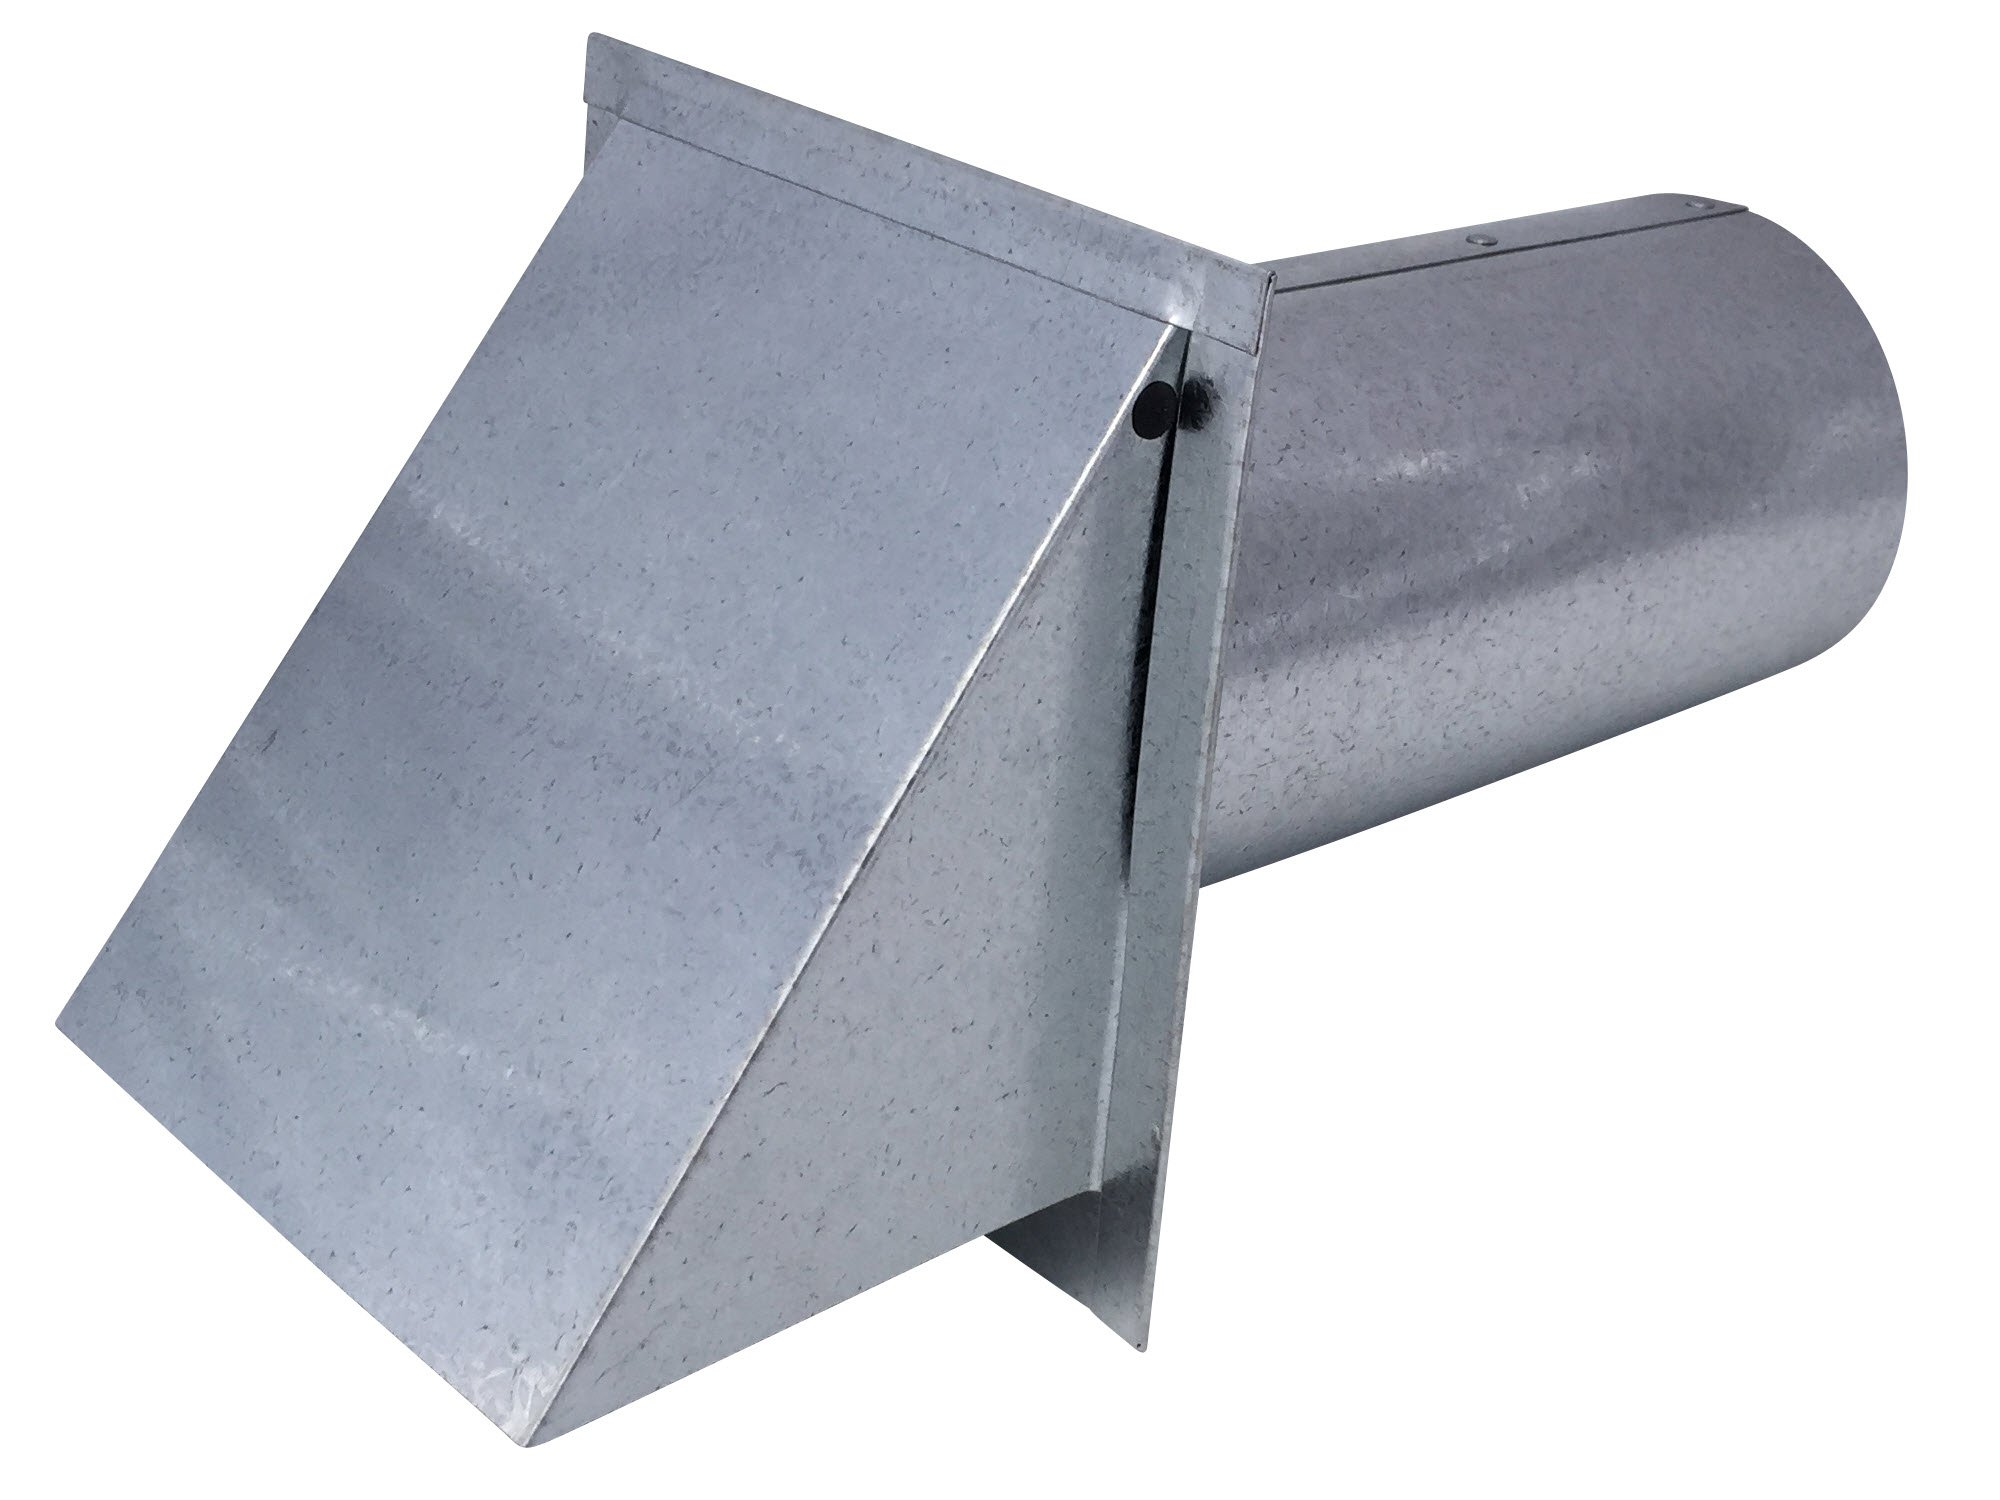 4 Inch Wall Vent Galvanized Screen Only (4 Inch diameter) - Vent Works